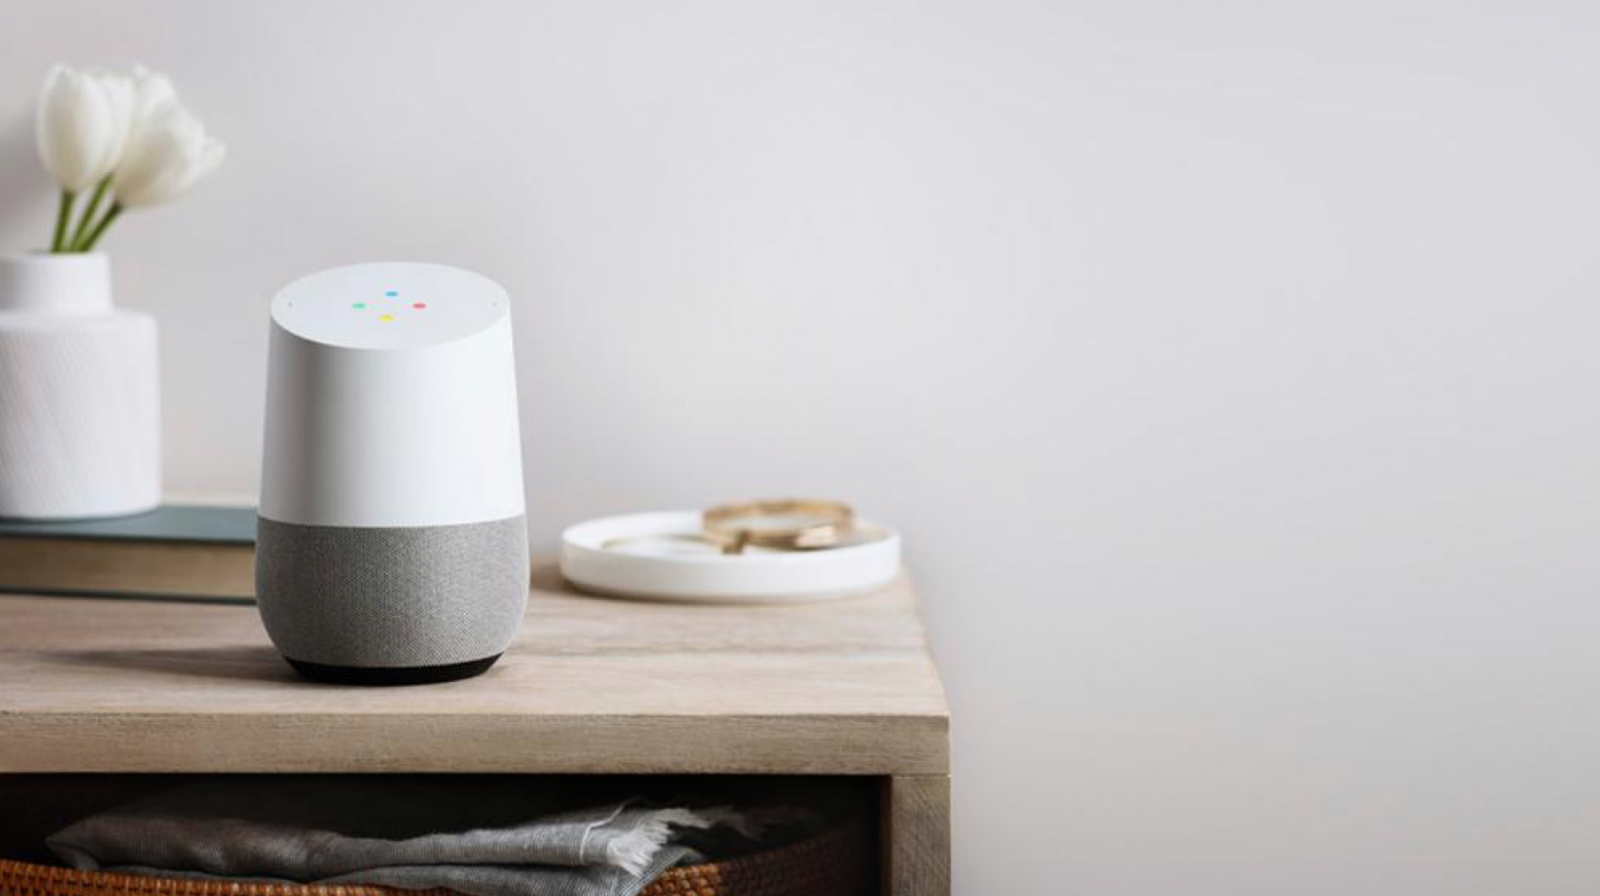 Google Home price, release date, features